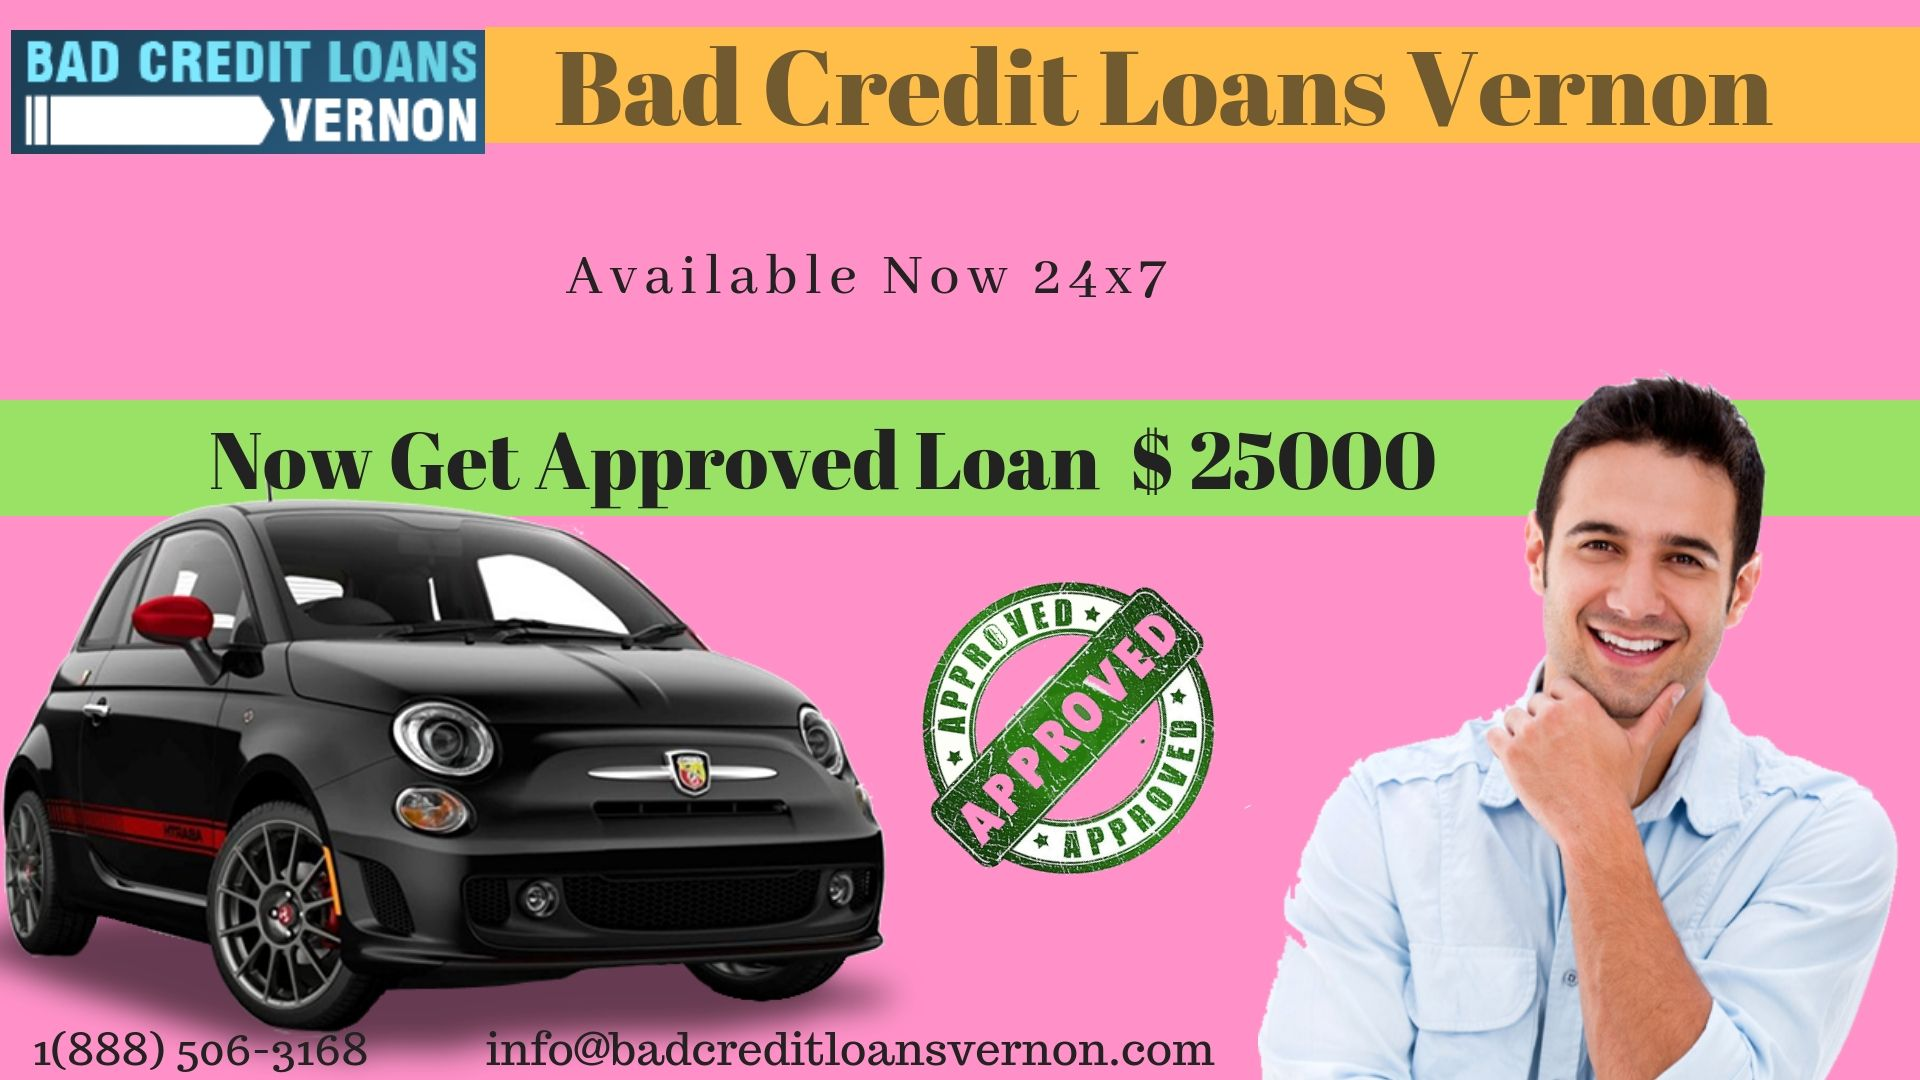 How To Get A 25000 Loan With Bad Credit